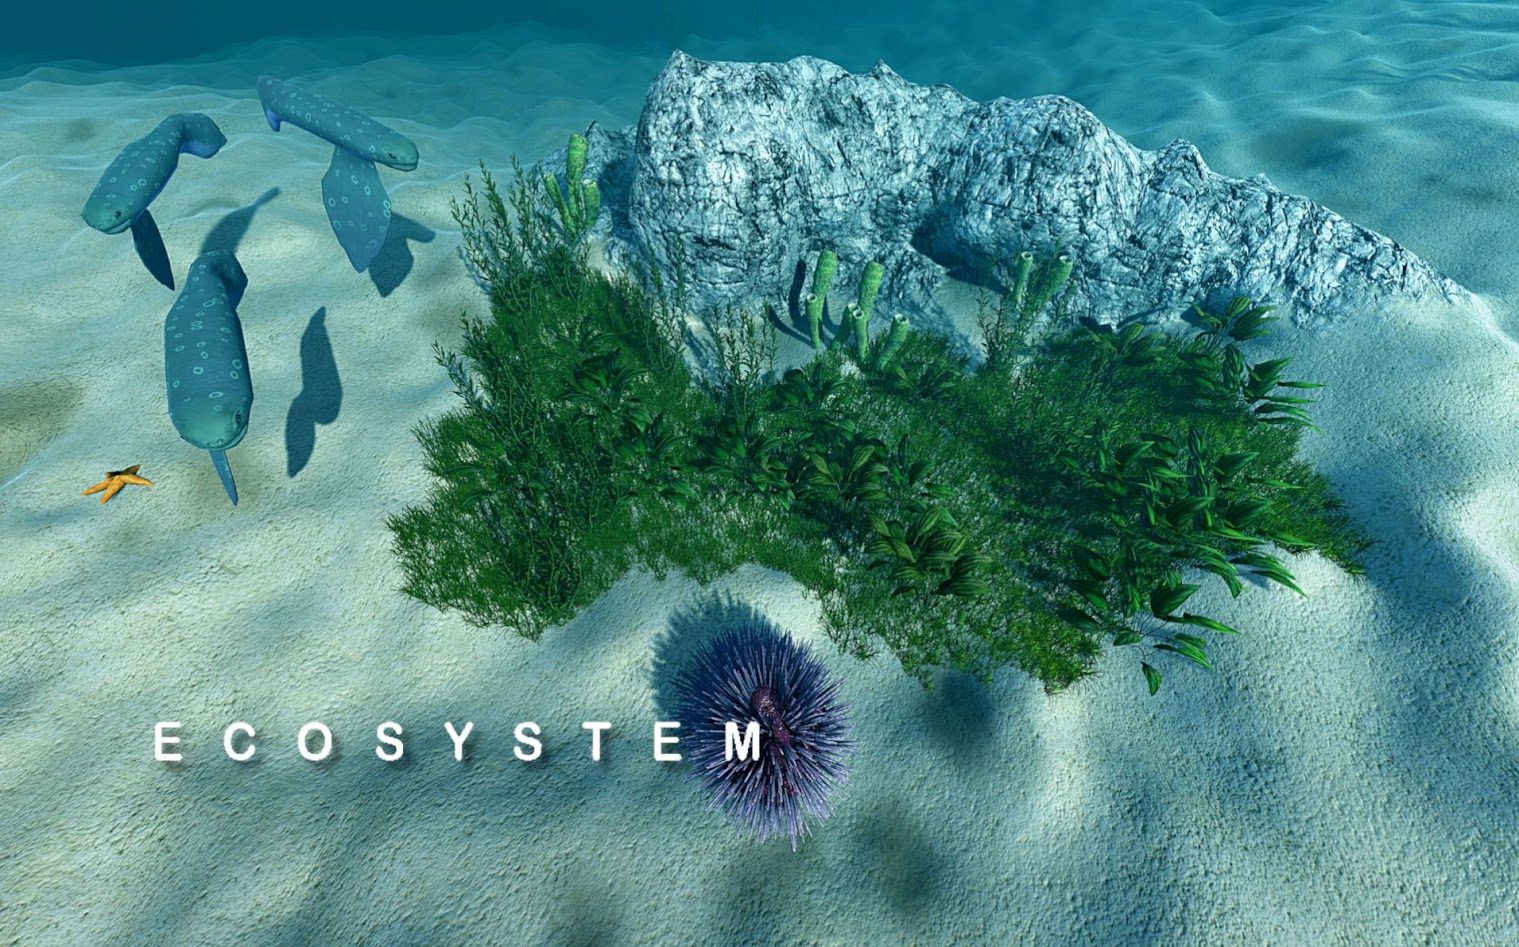 Ecosystem Is A Game Where You Can Create And Evolve You Own Sea Life